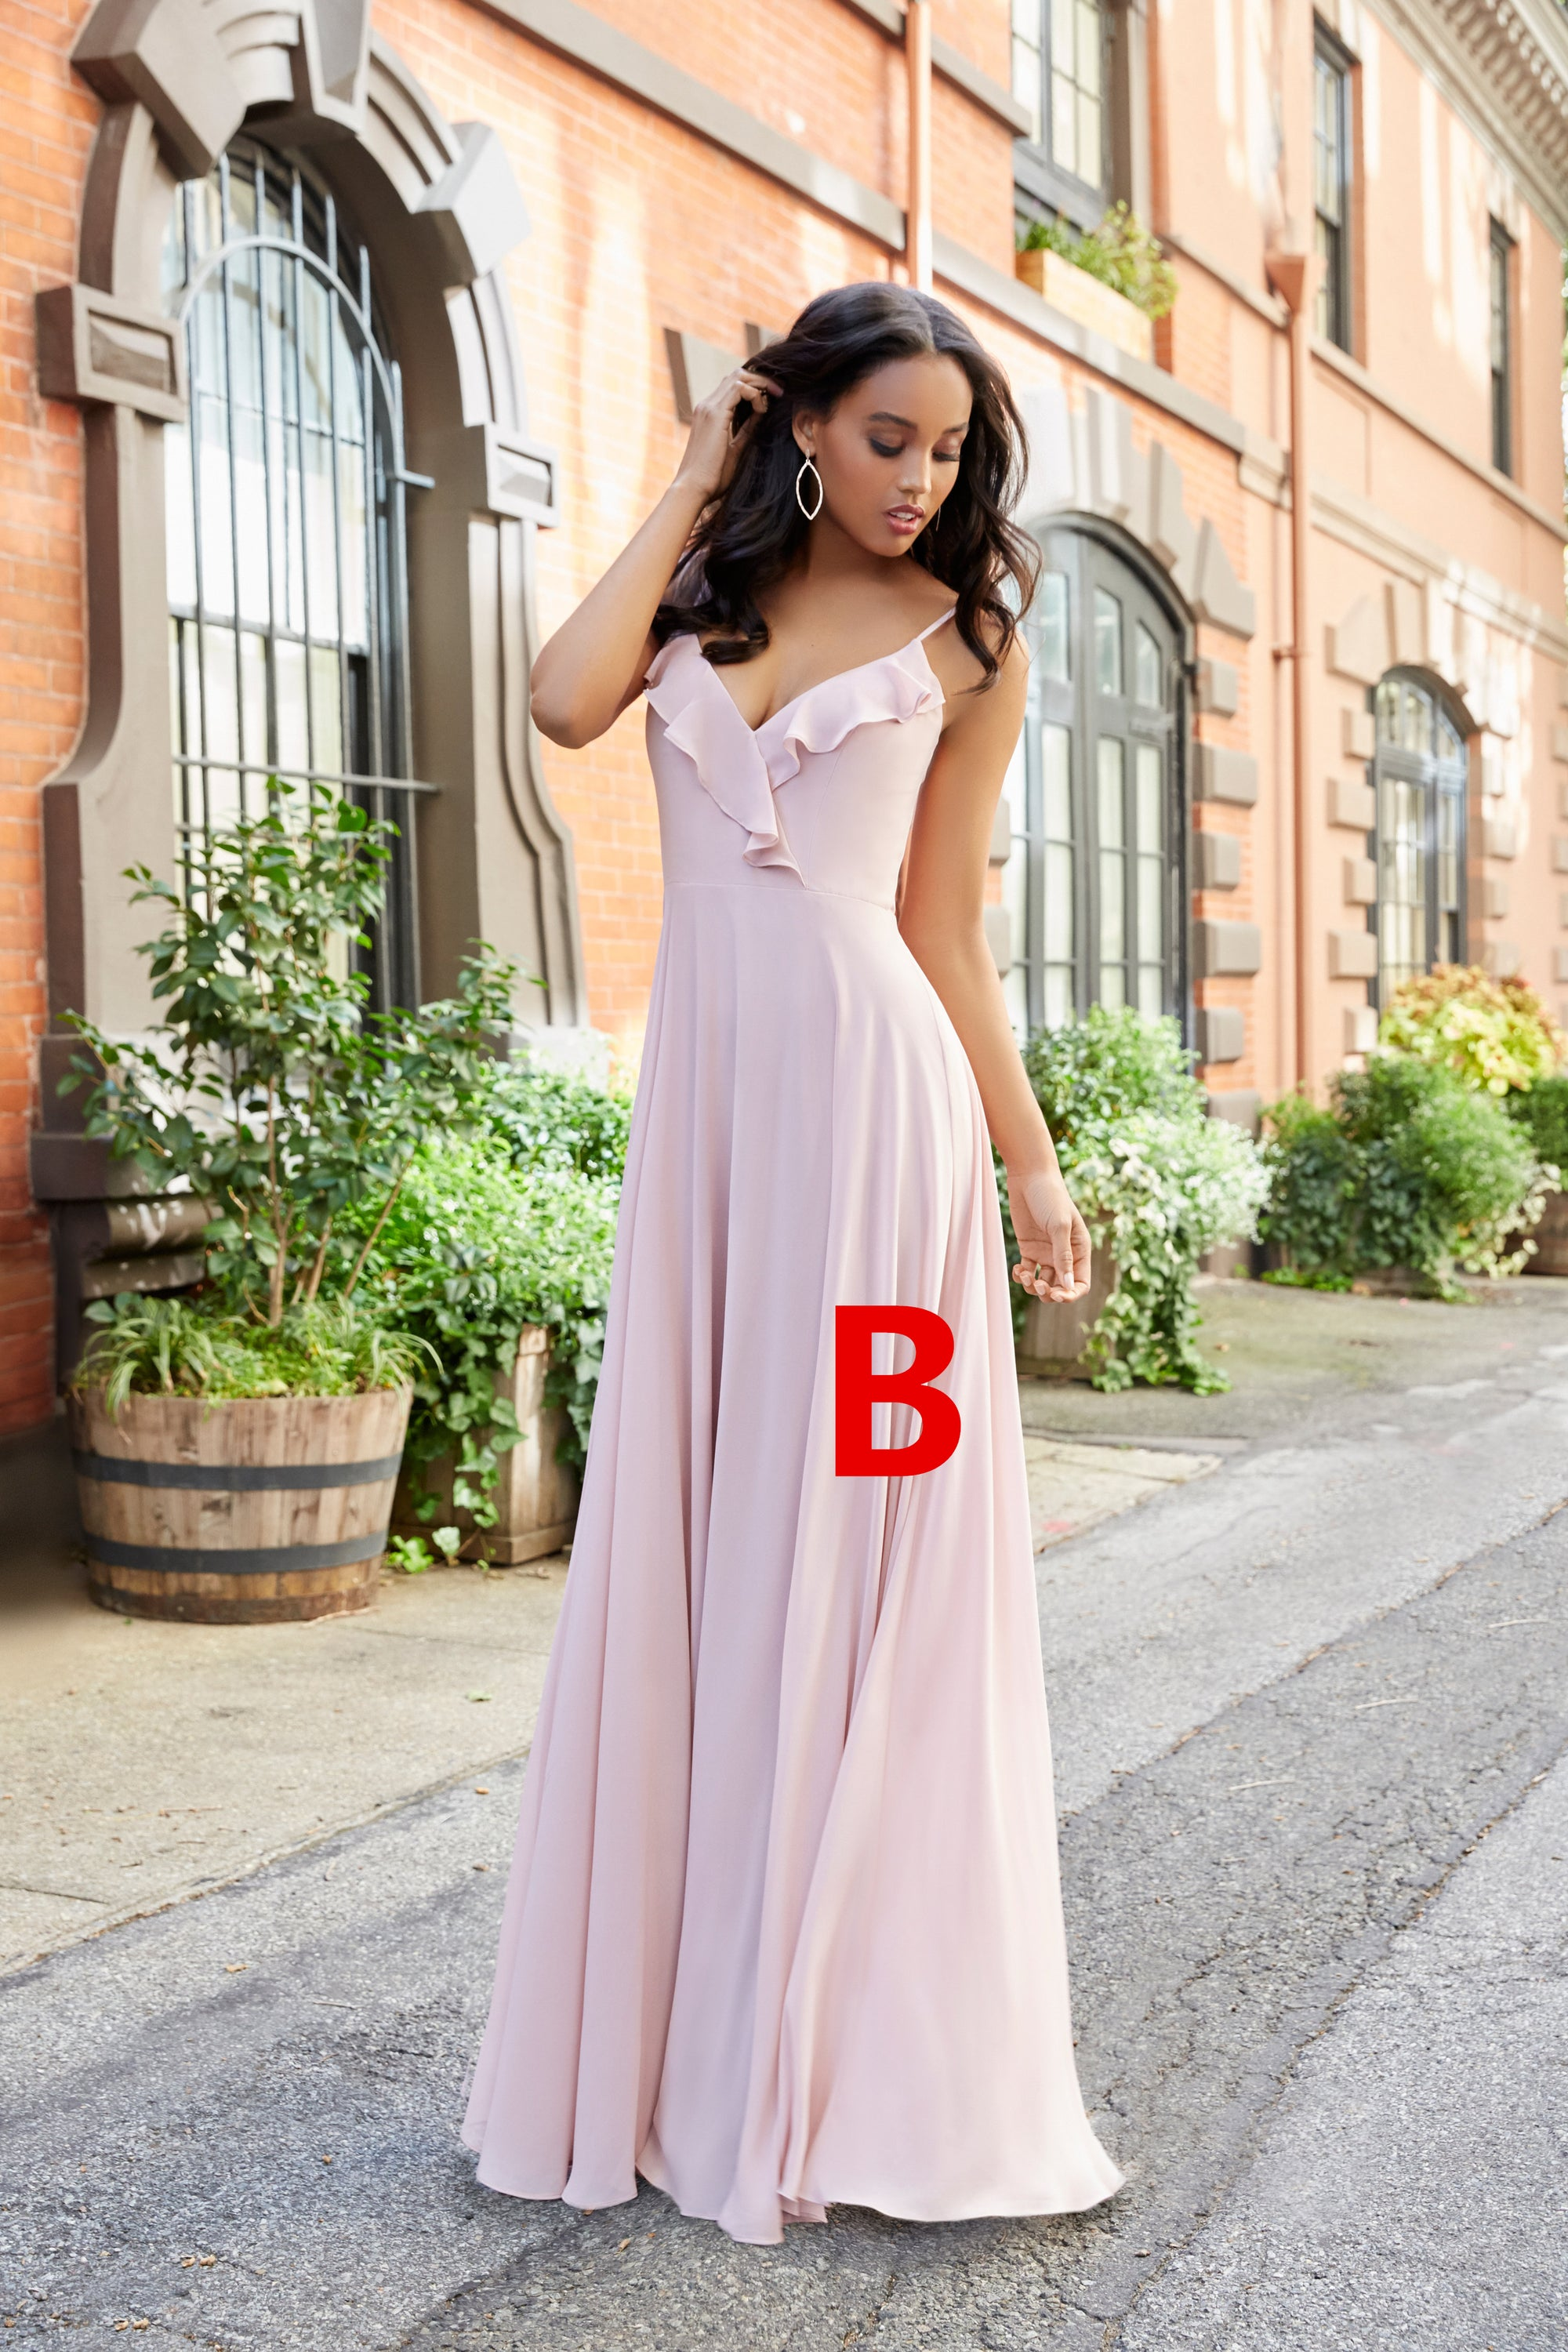 Mismatched bridesmaid dress chiffon bridesmaid dress pink mismatched bridesmaid dress chiffon bridesmaid dress pink bridesmaid dress lb0907 ombrellifo Choice Image